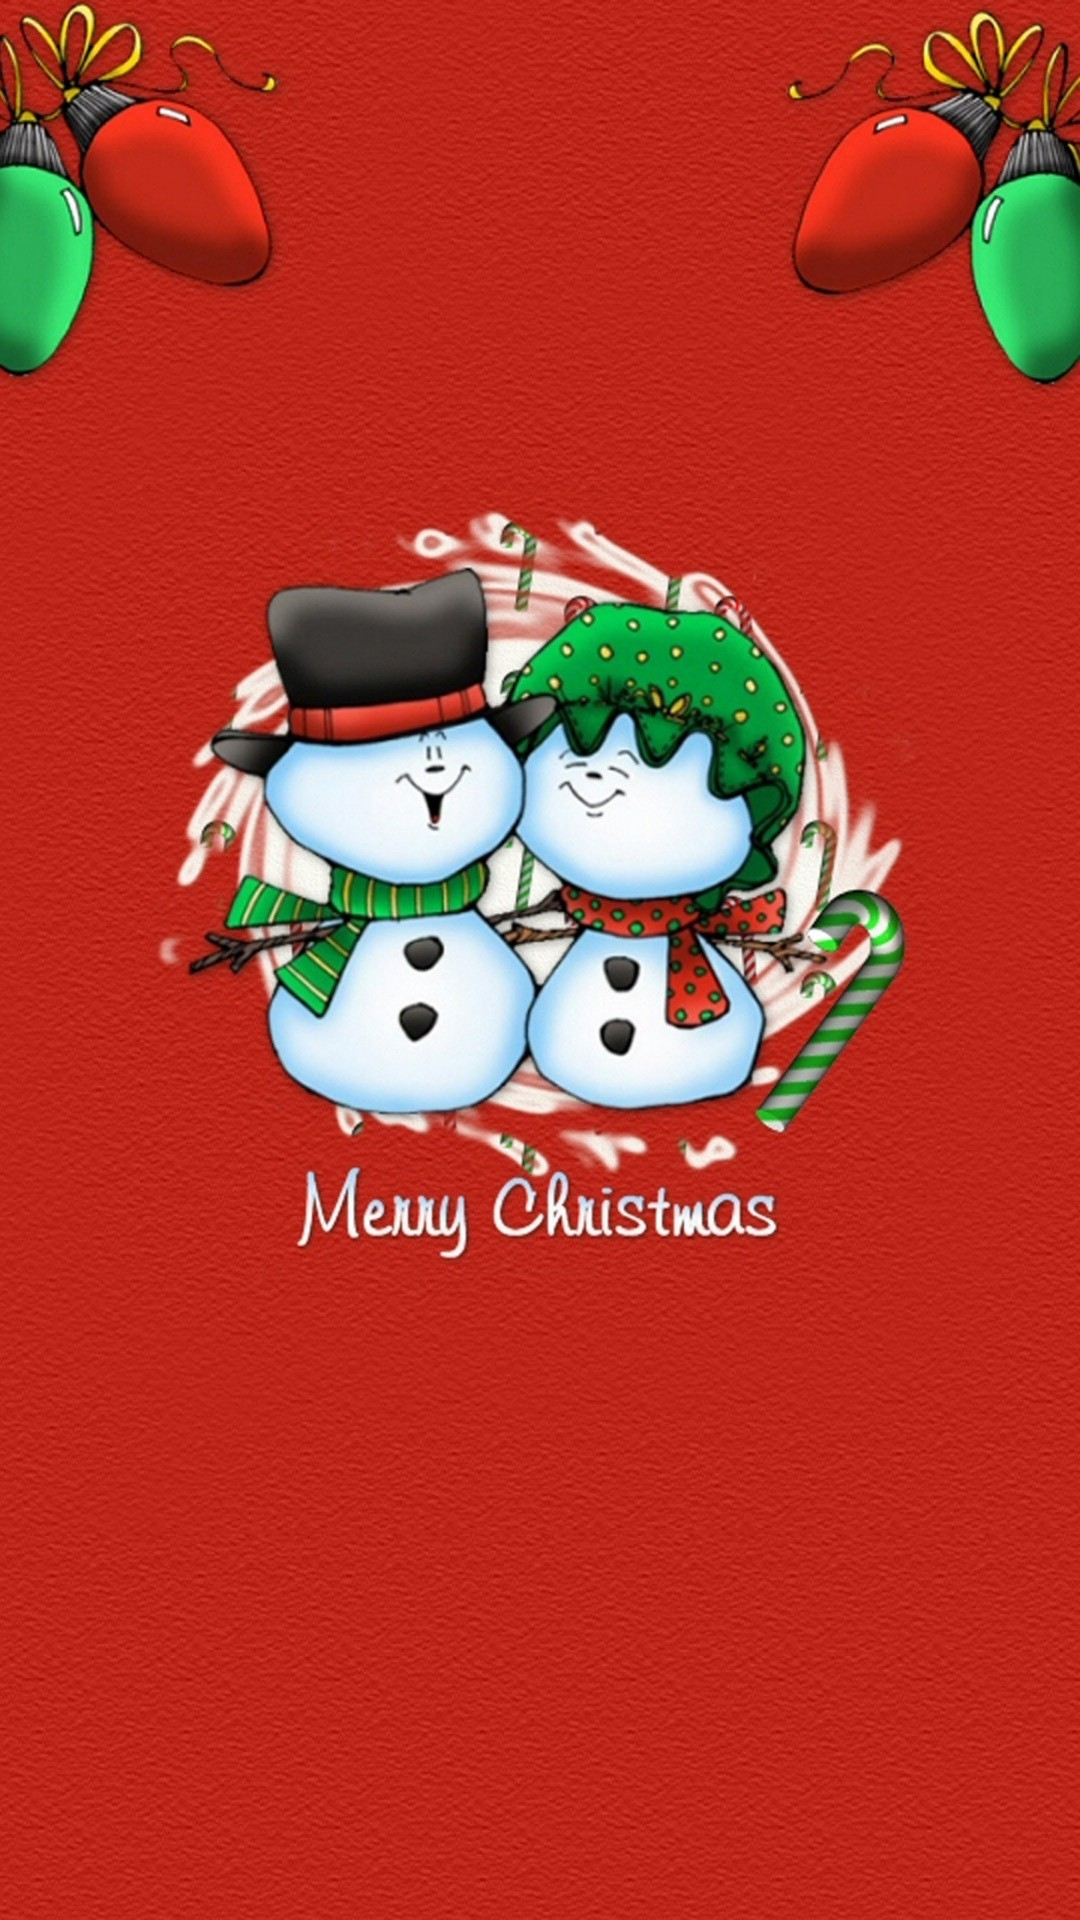 snowman wallpaper wallpaper background